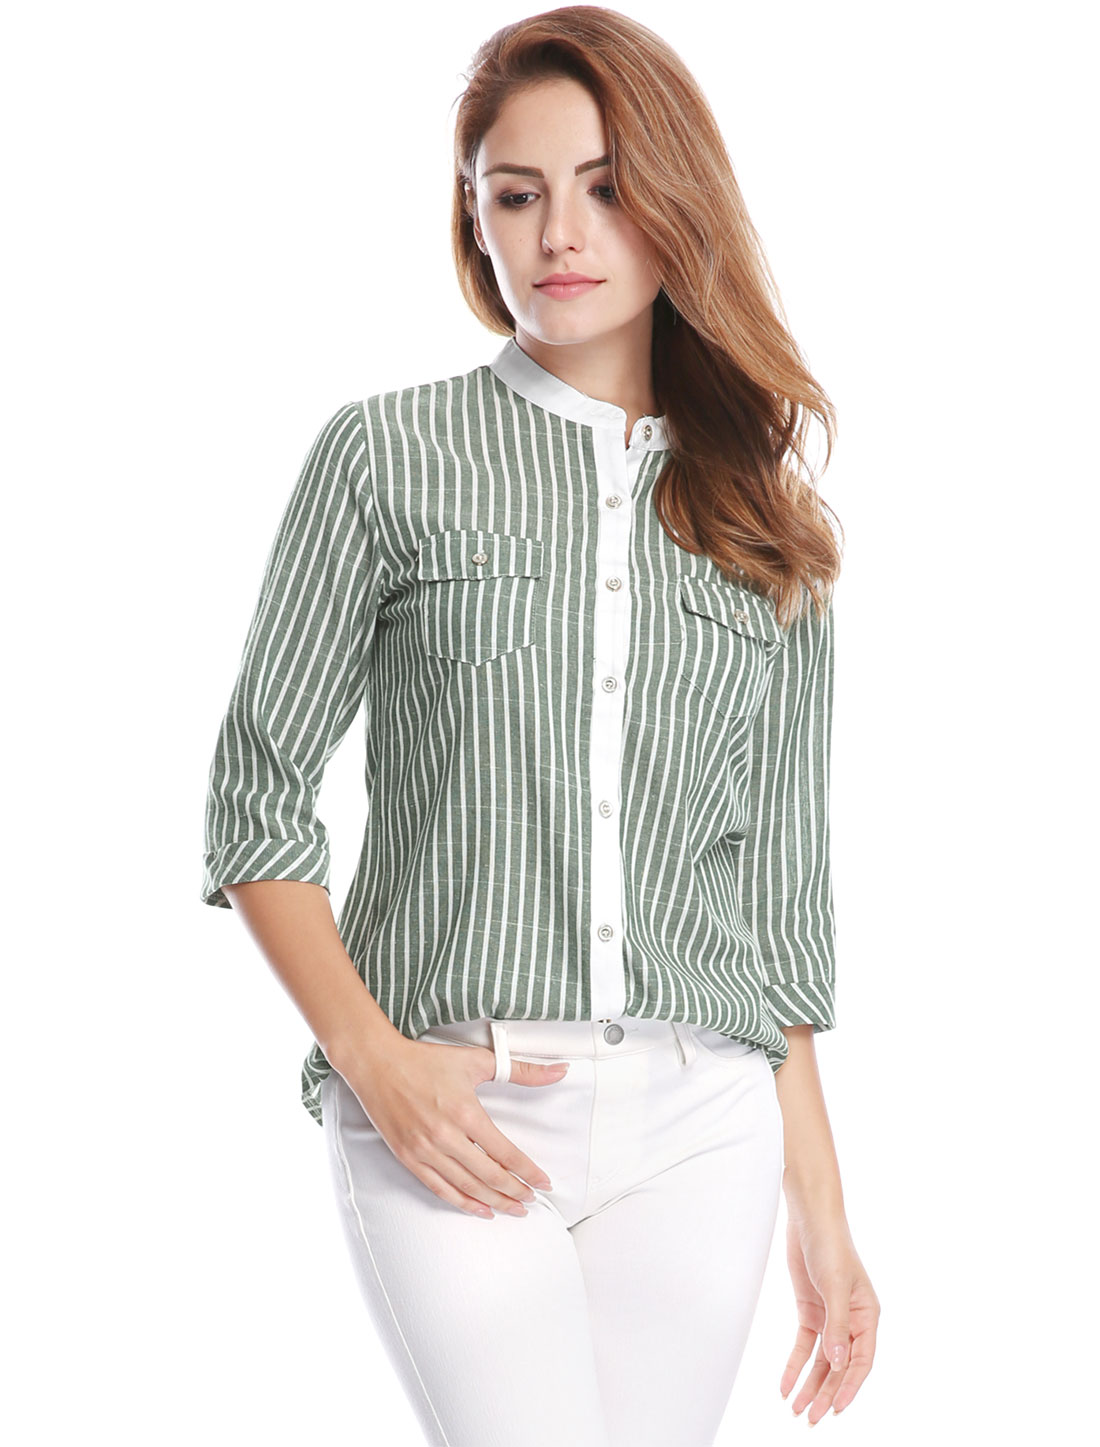 Woman Cuffed 3/4 Sleeves Stand Collar Buttoned Striped Shirt Green XL